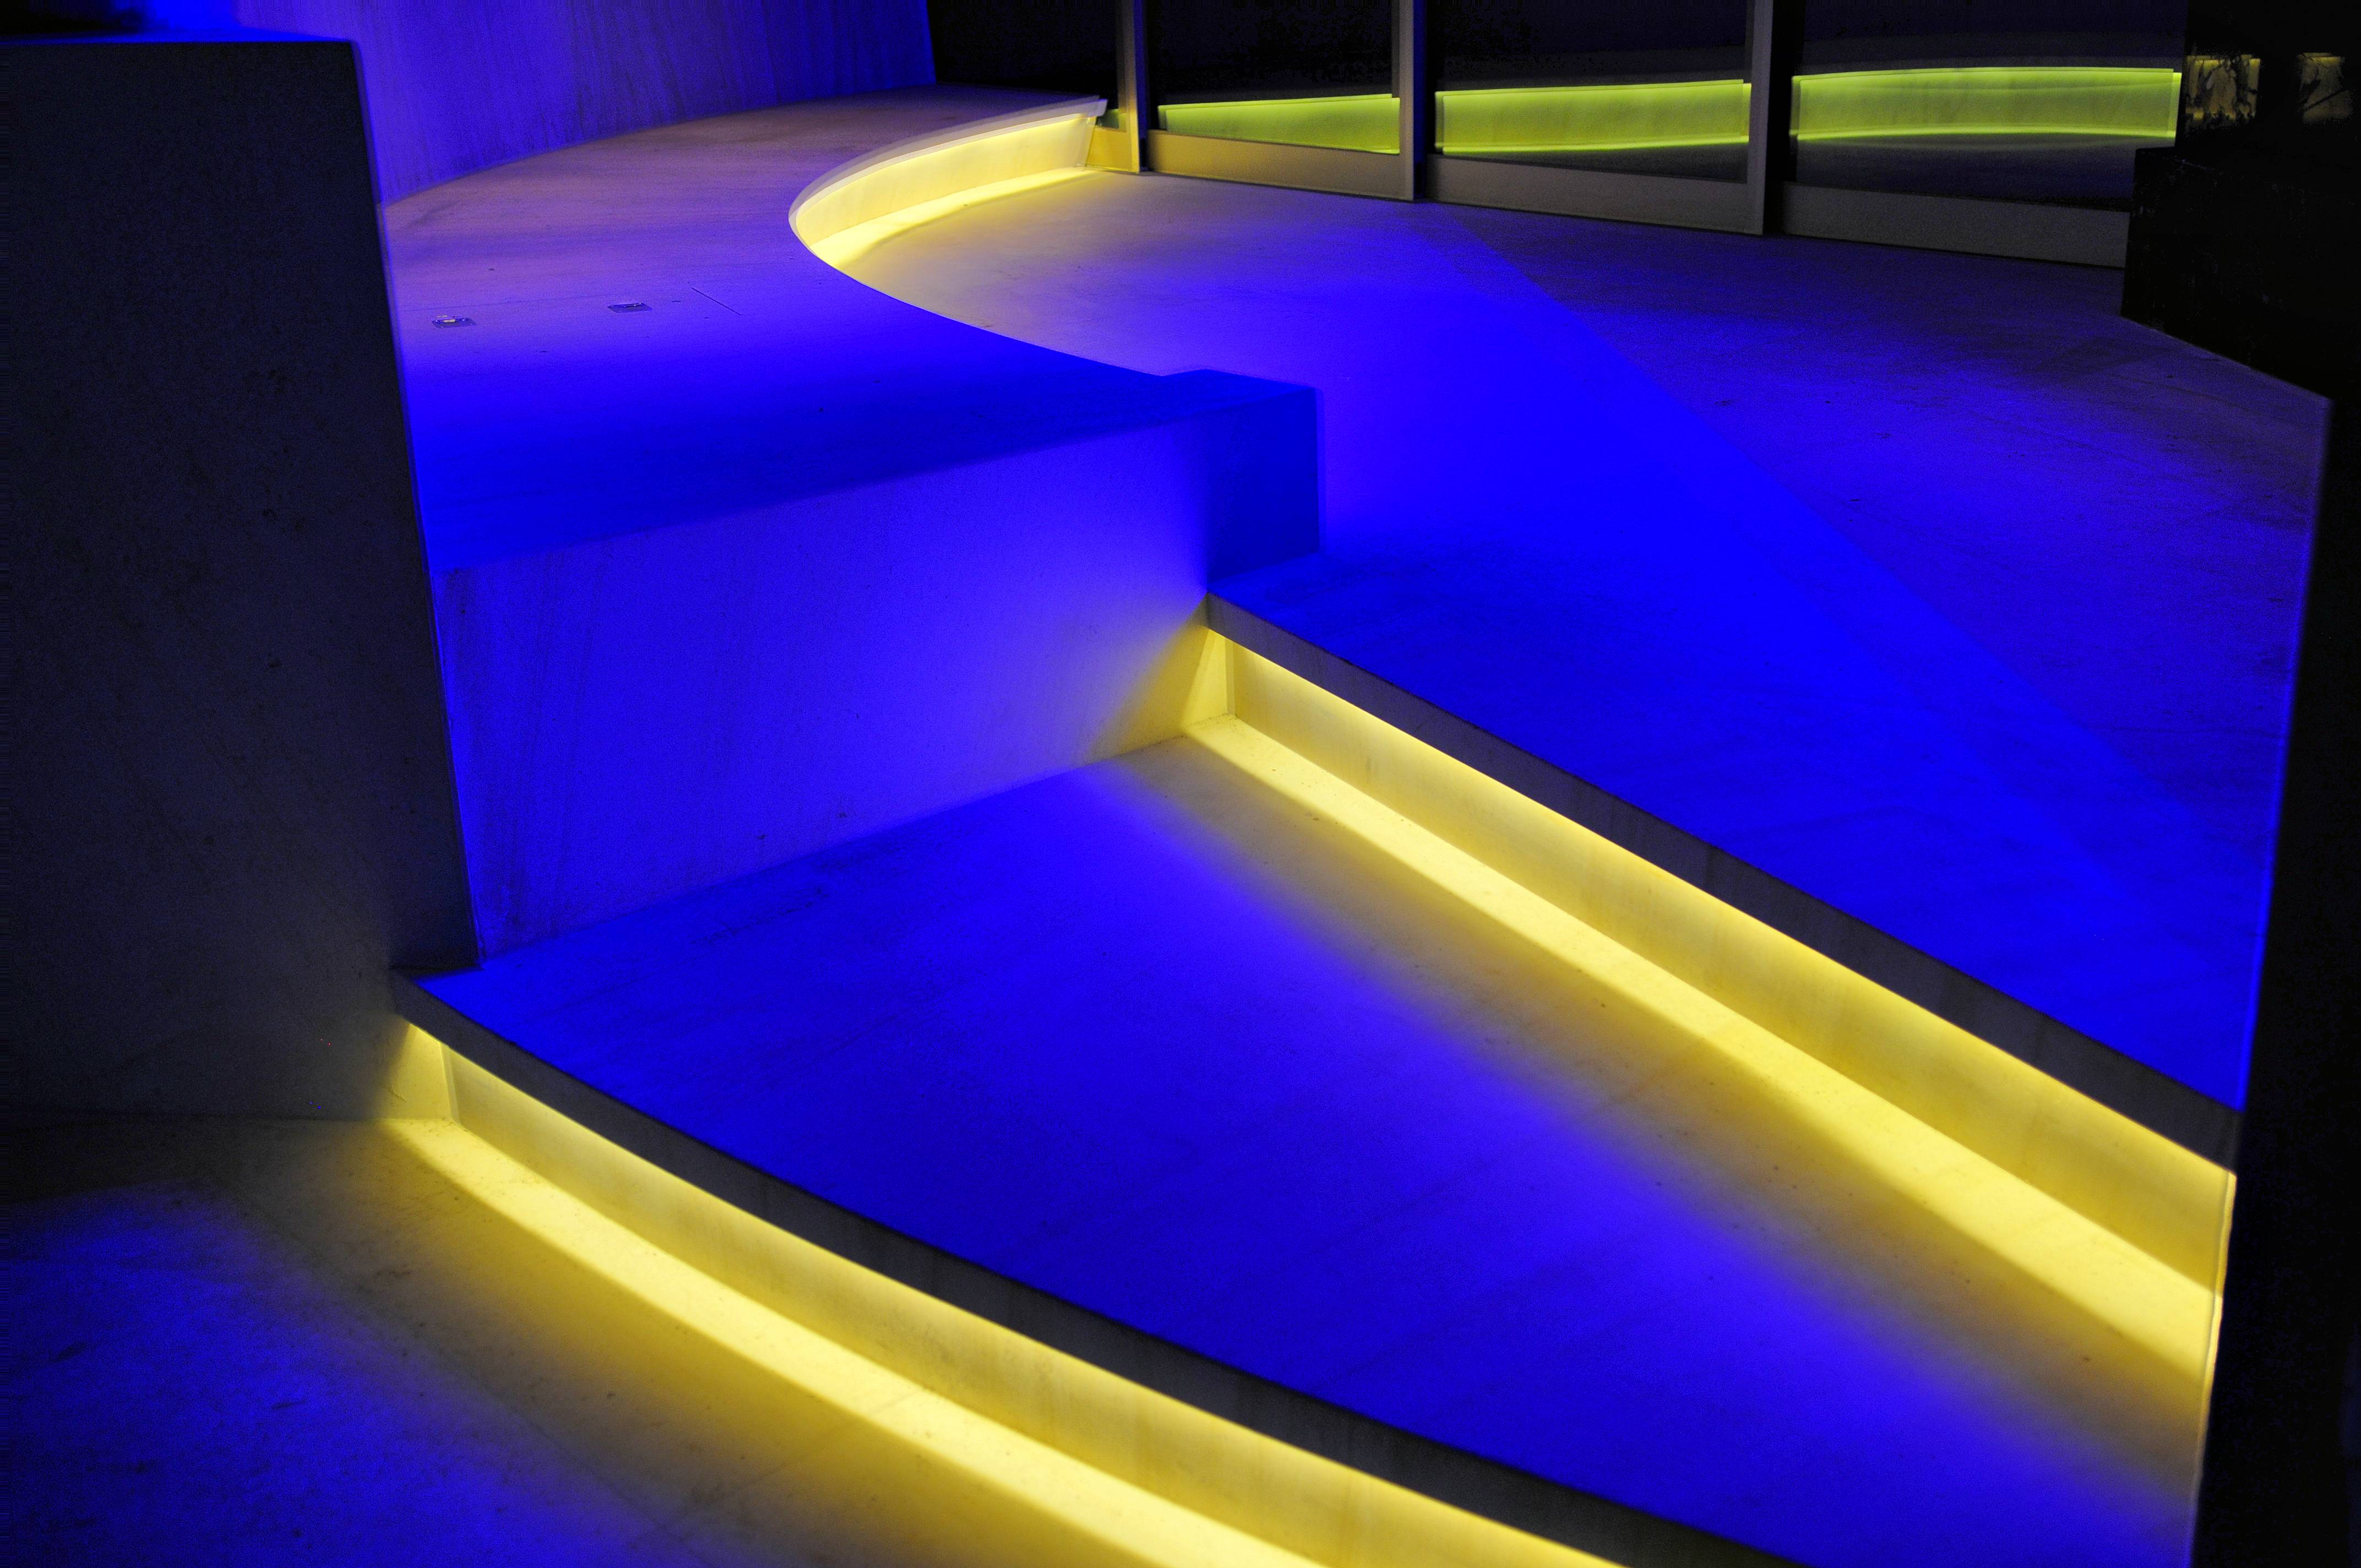 Stairwell lit by colored LED lights